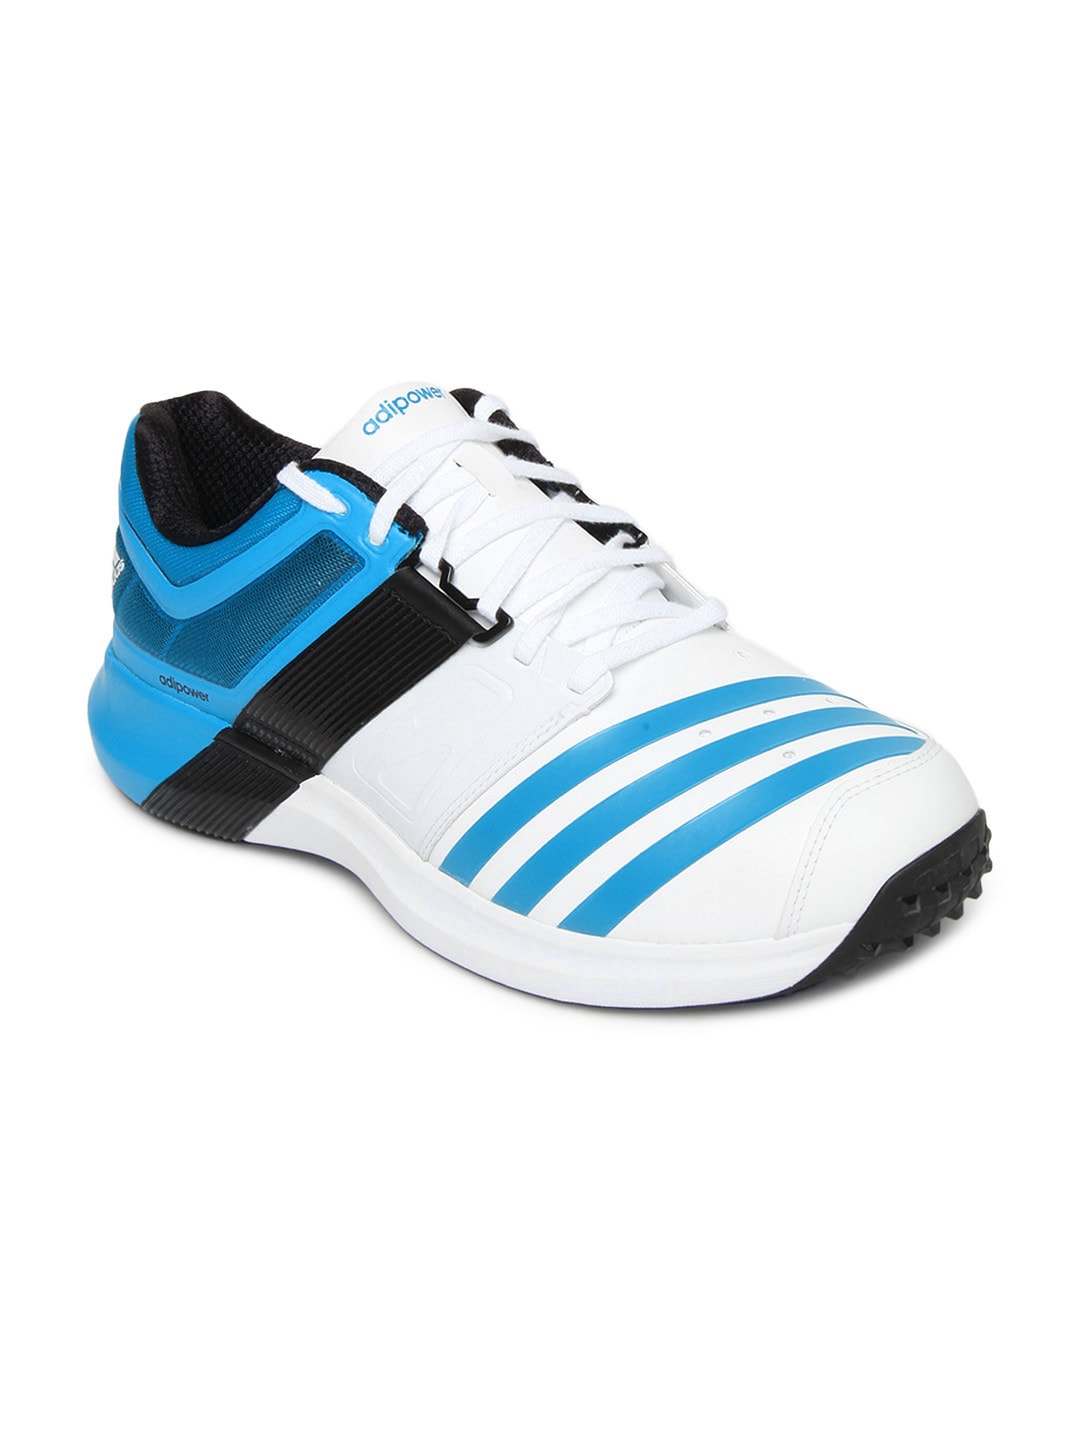 Adidas Shoes India Myntra